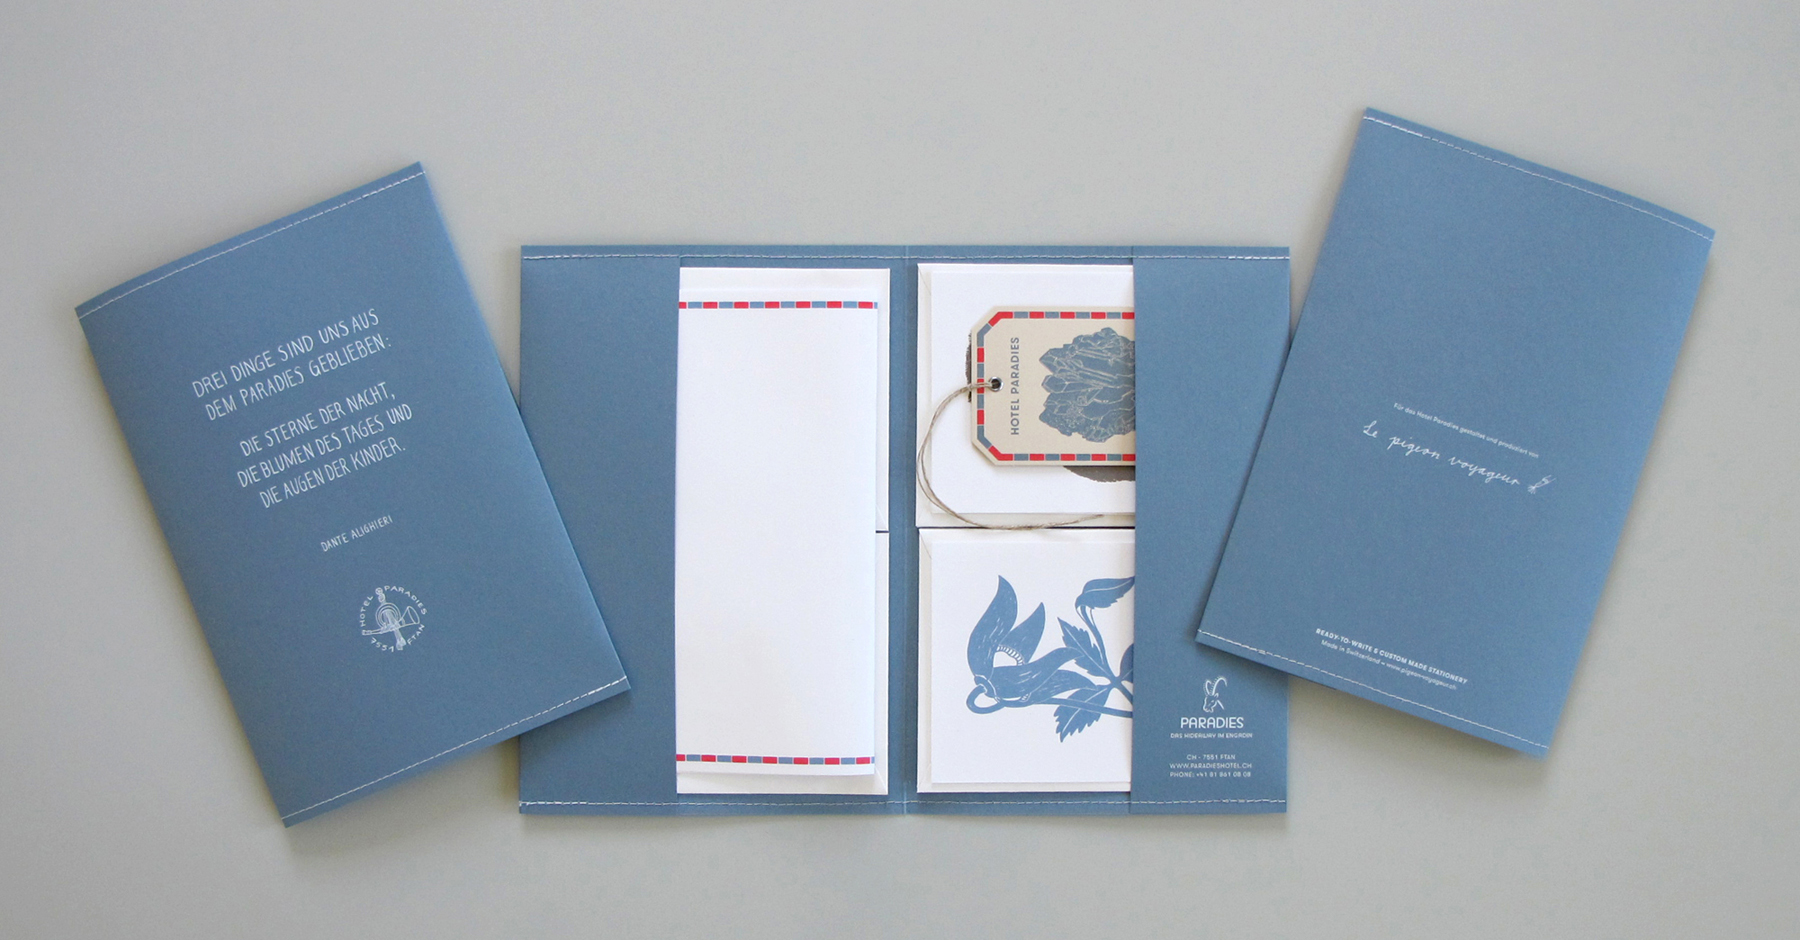 Stationery set, Hotel Paradies Ftan